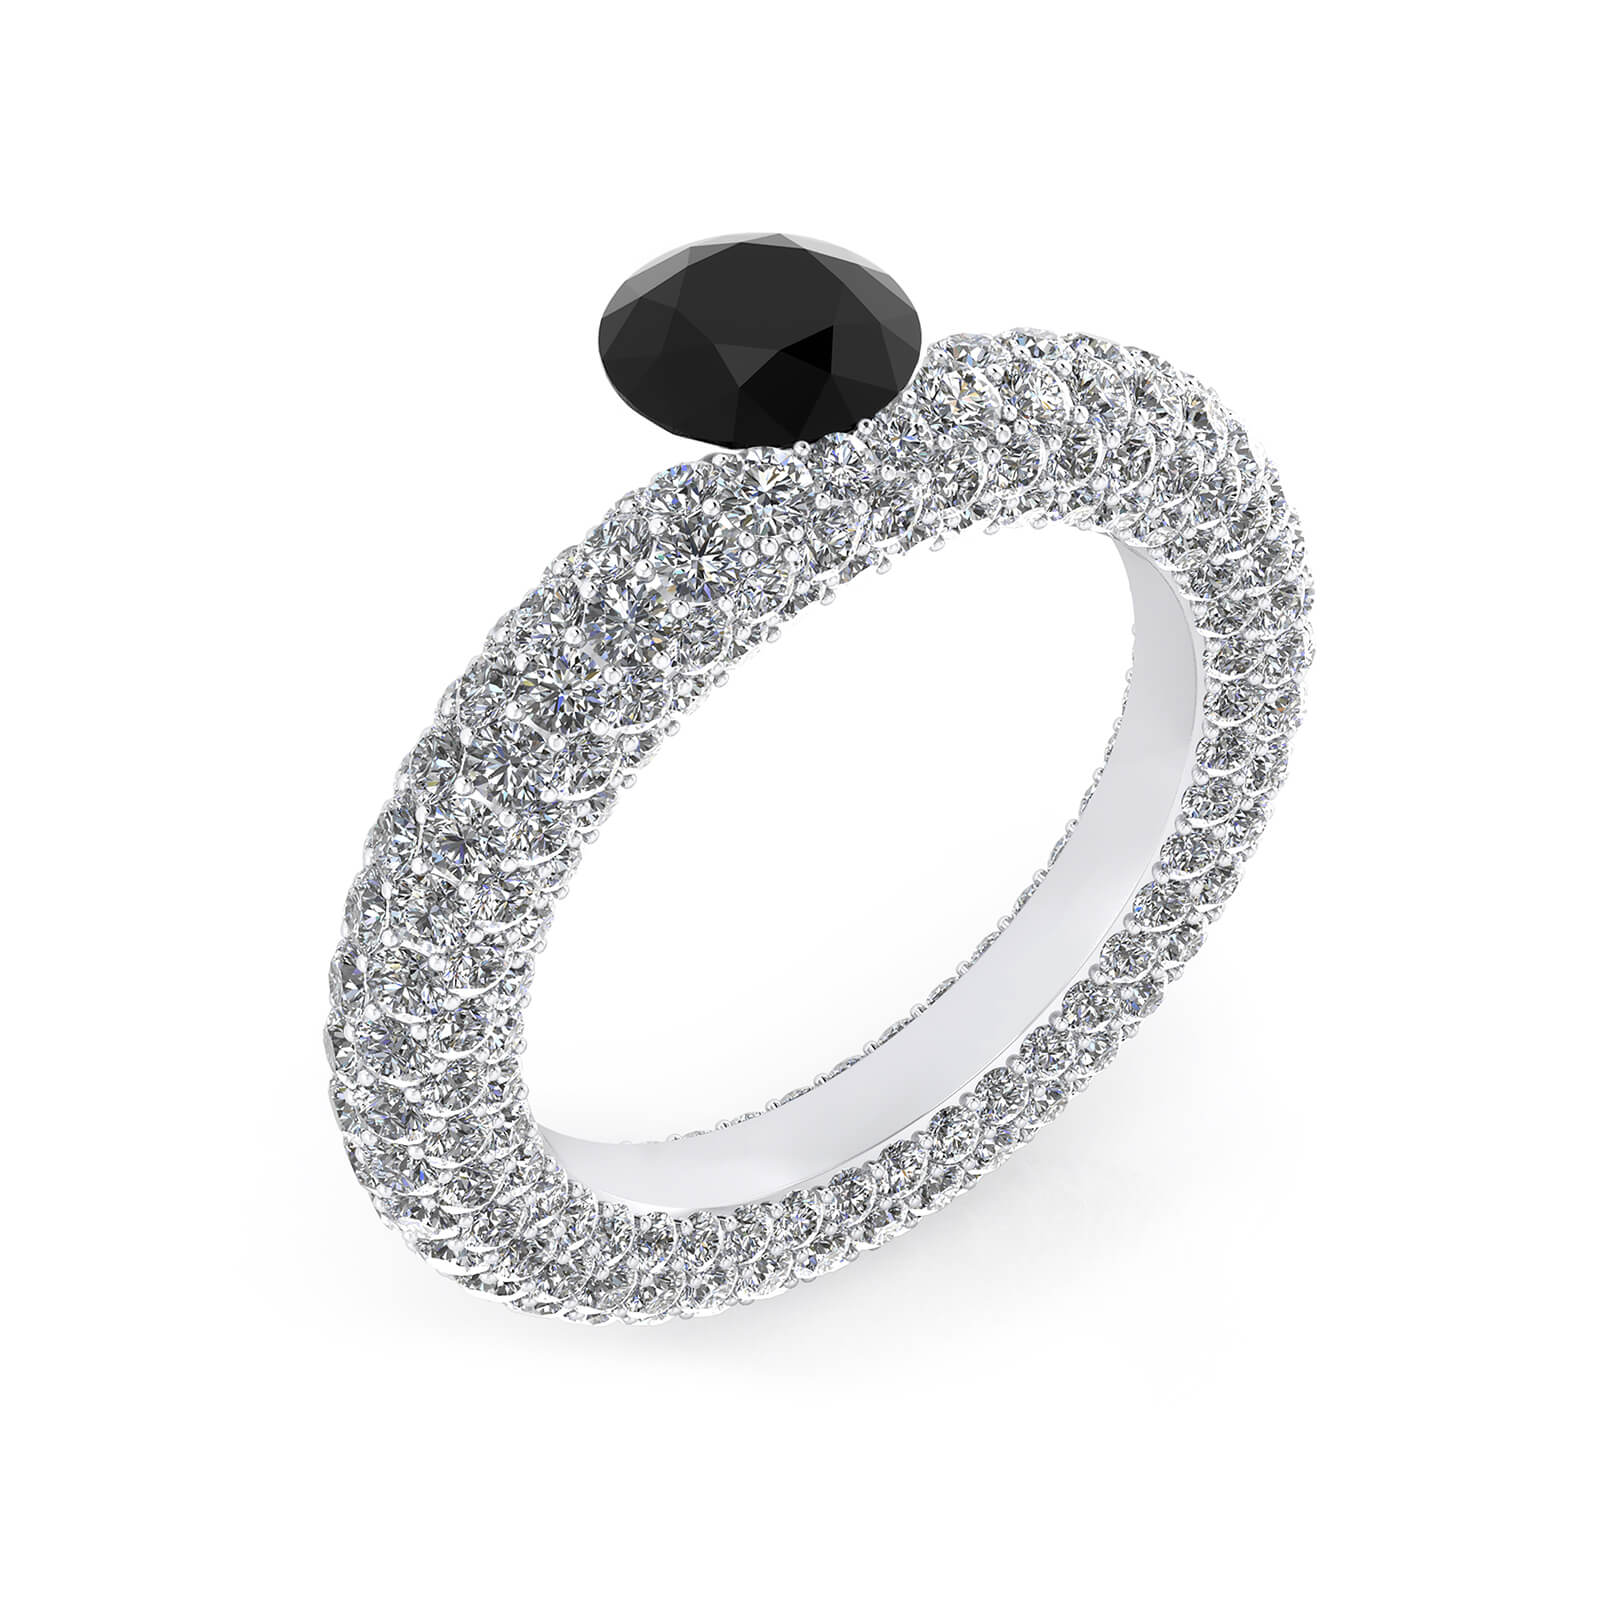 Ring with 143 diamonds and a magnificent black diamond